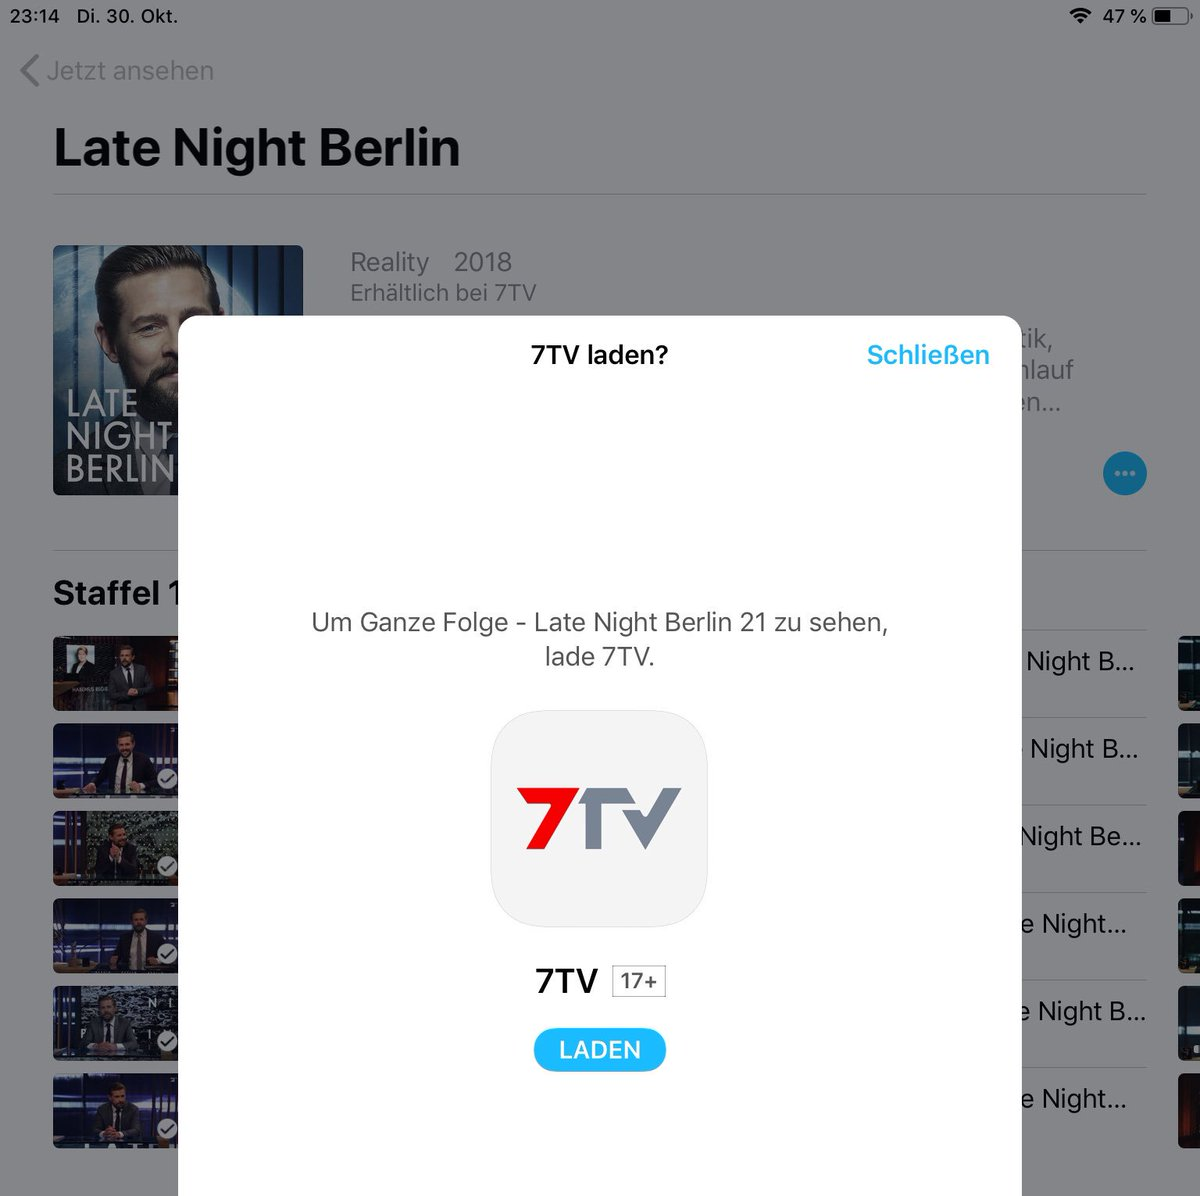 Drehcafe On Twitter At P7s1group At Latenightberlin At Prosieben Habt